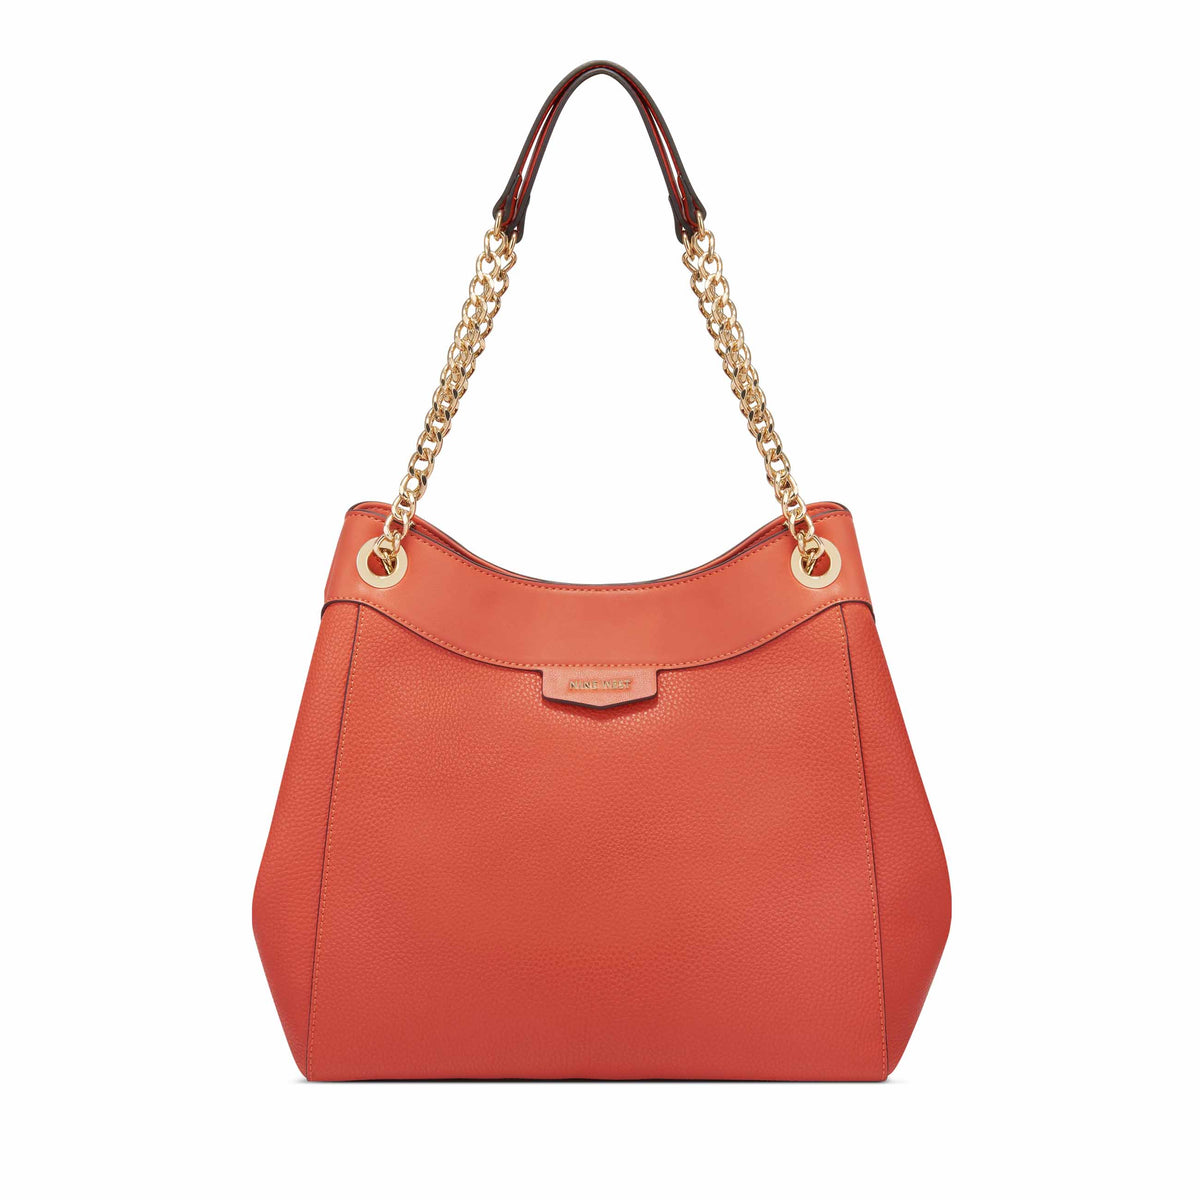 cara-marea-carryall-in-tropic-orange